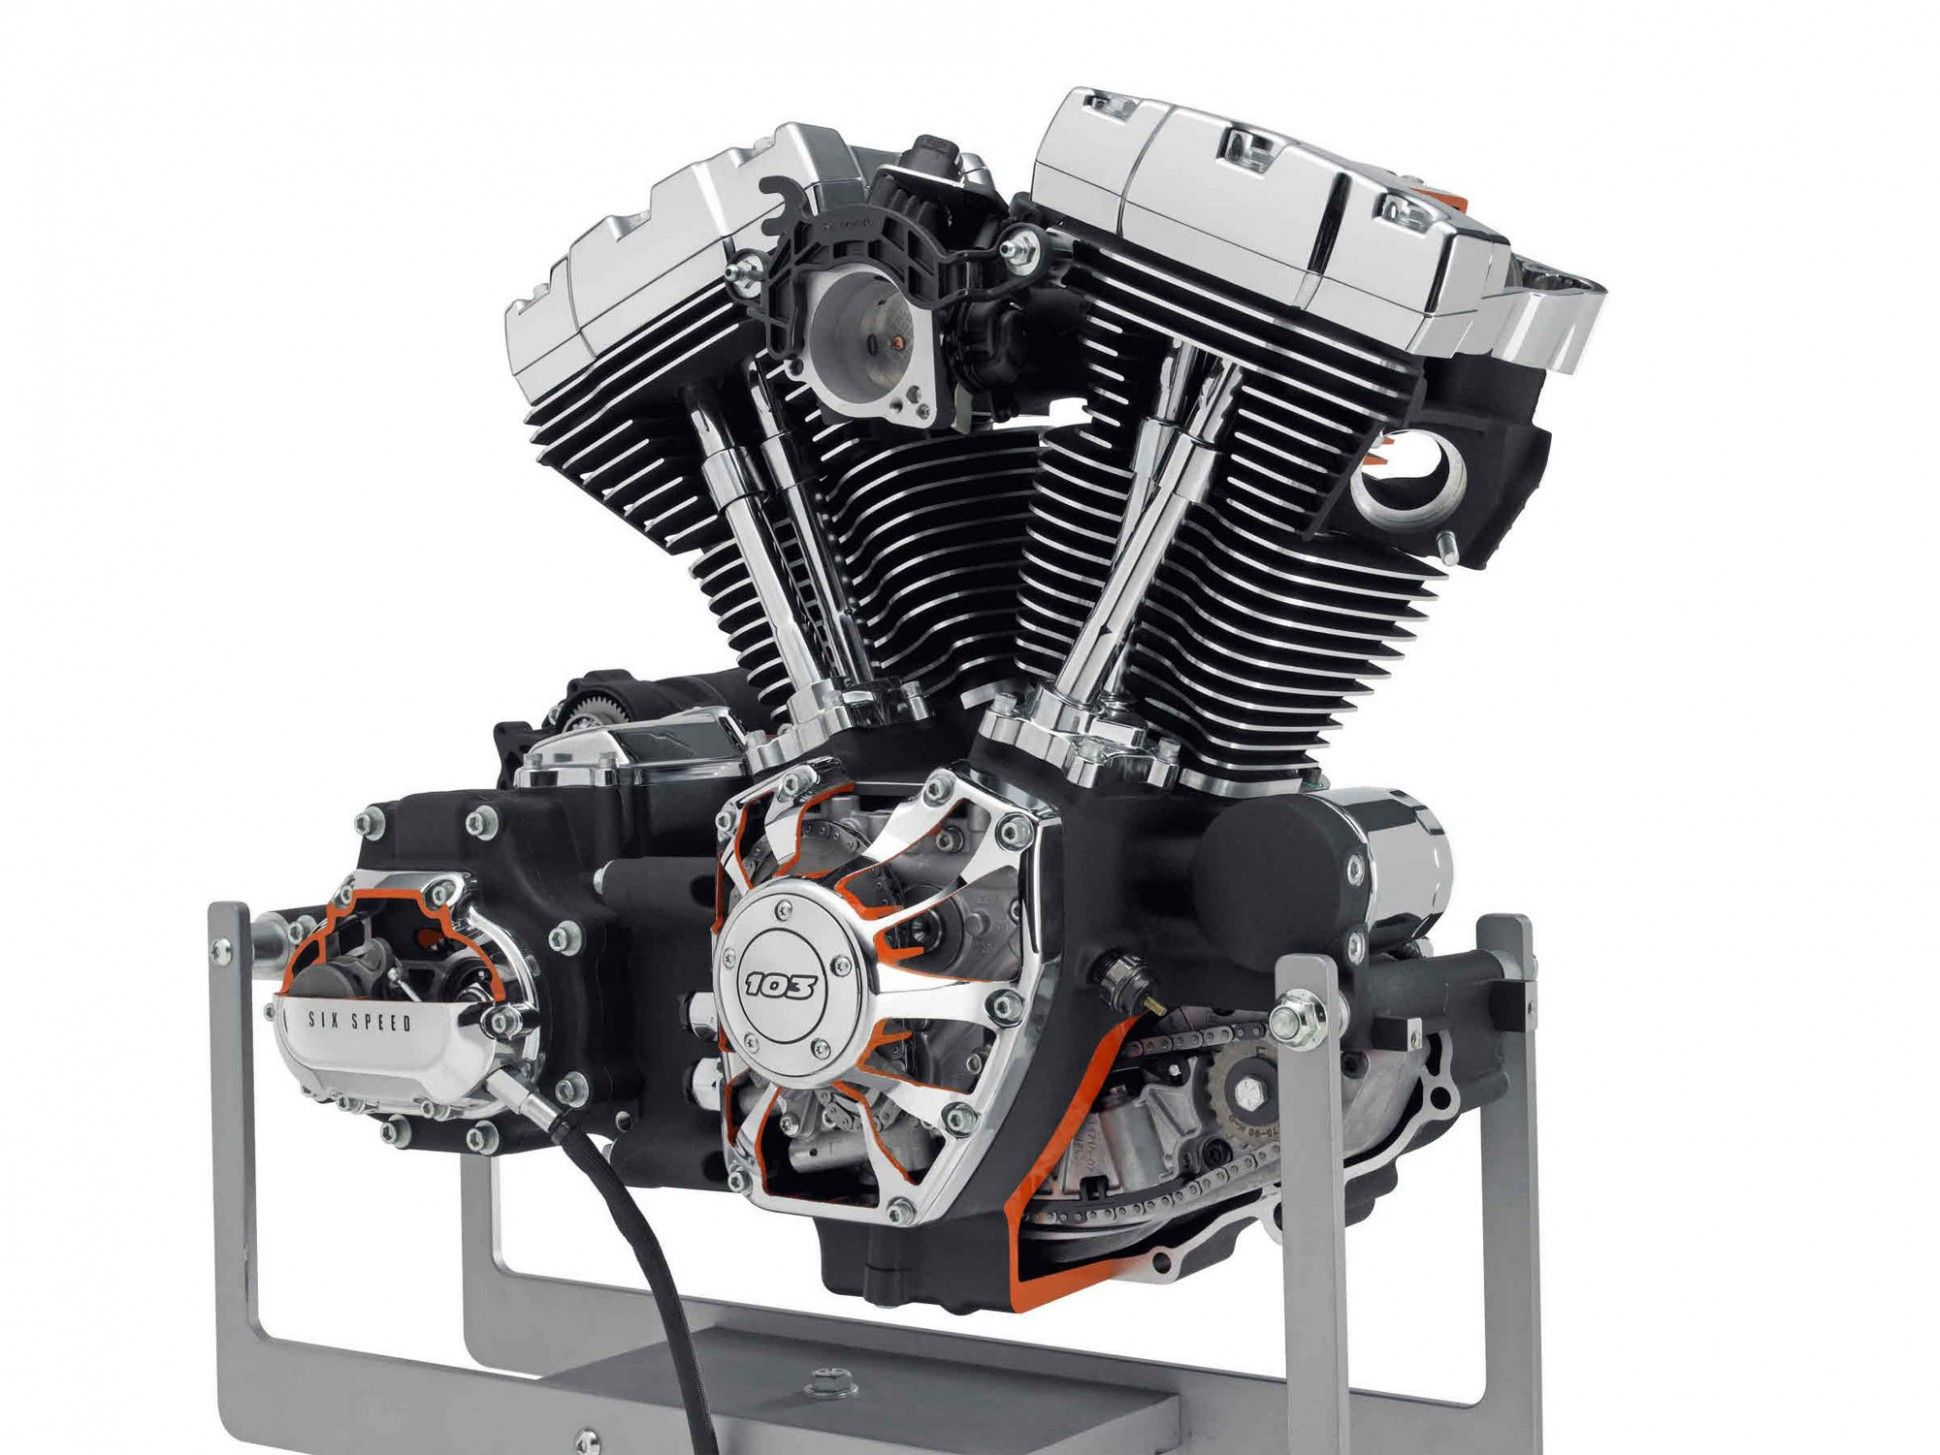 Harley Davidson Twin Cam Engine Diagram Video Di 2020